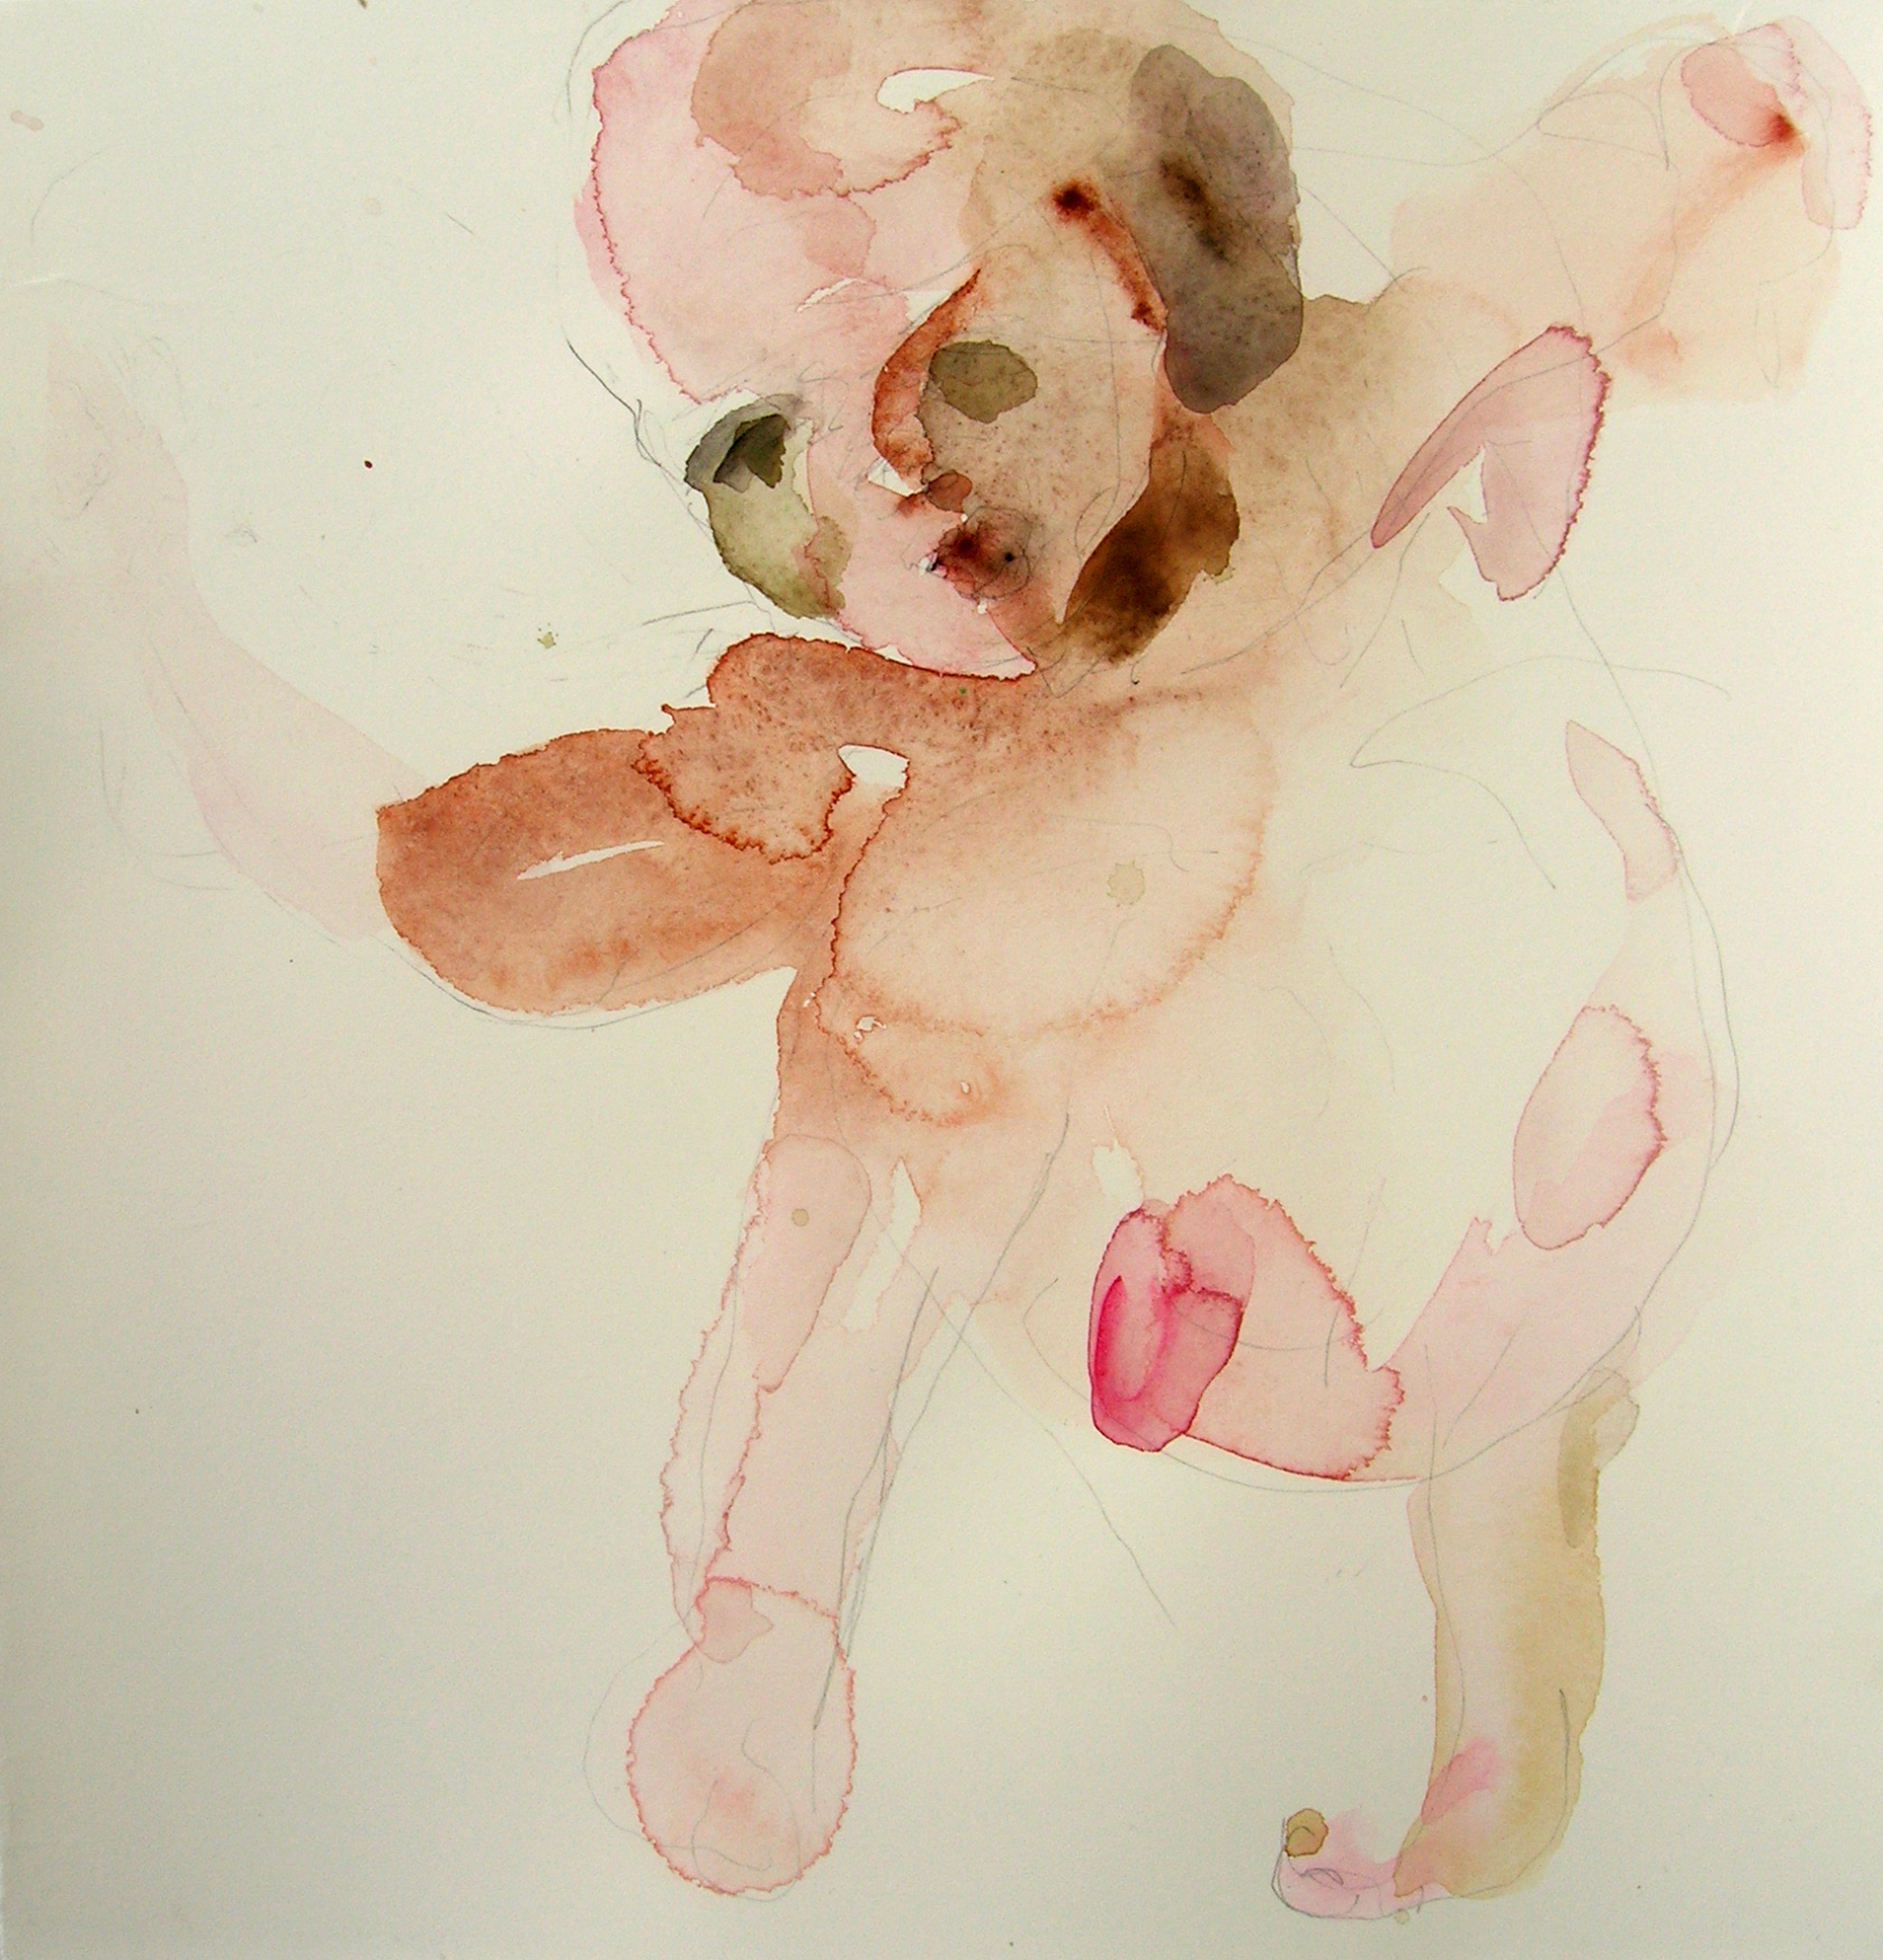 Sentar 28, 2007, Graphite and watercolor on paper, 13 X 12 in.